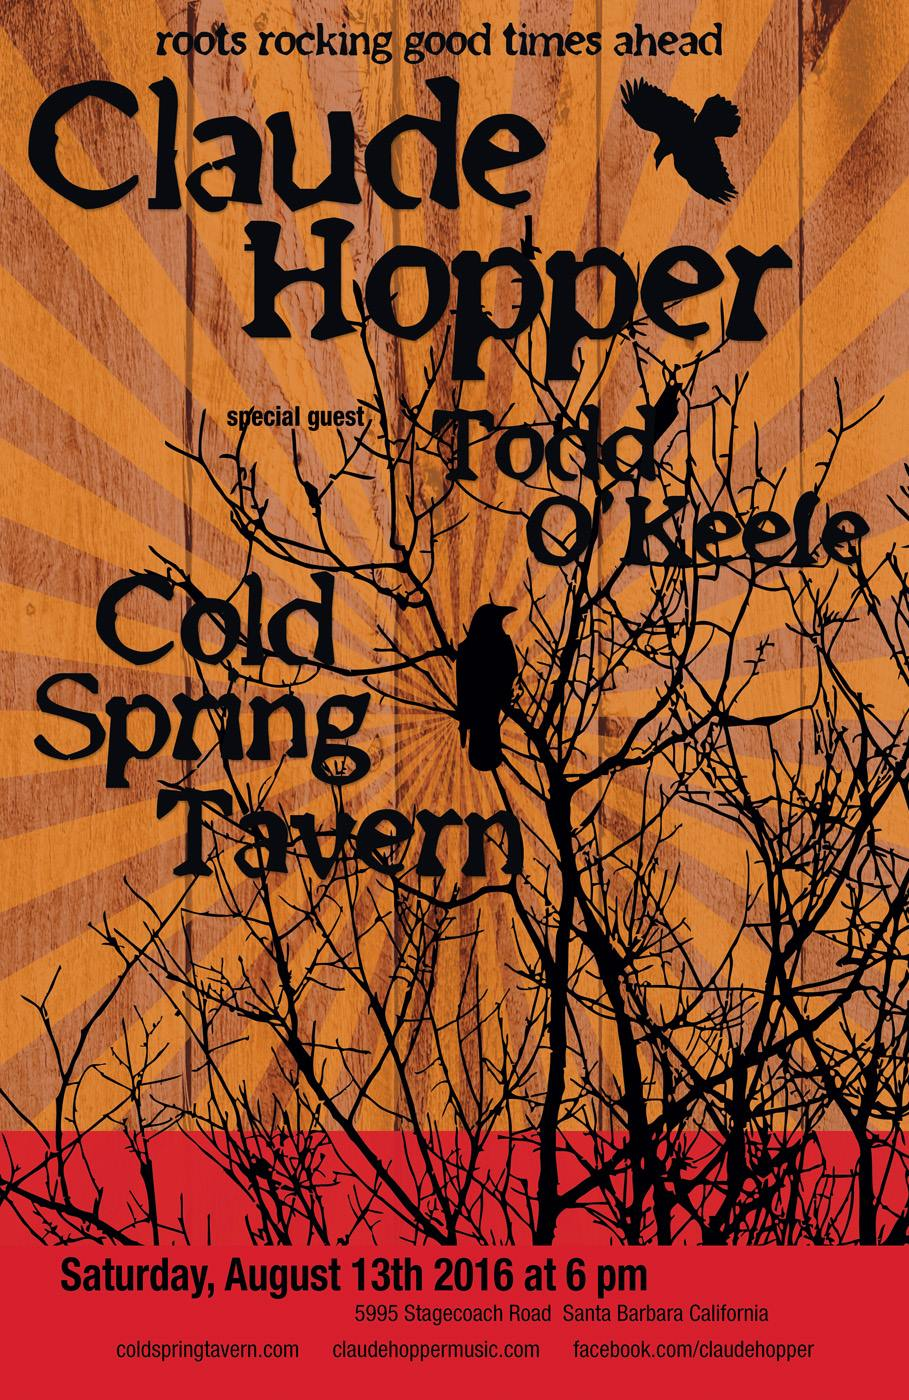 Cold Spring Tavern – August 13, 2016